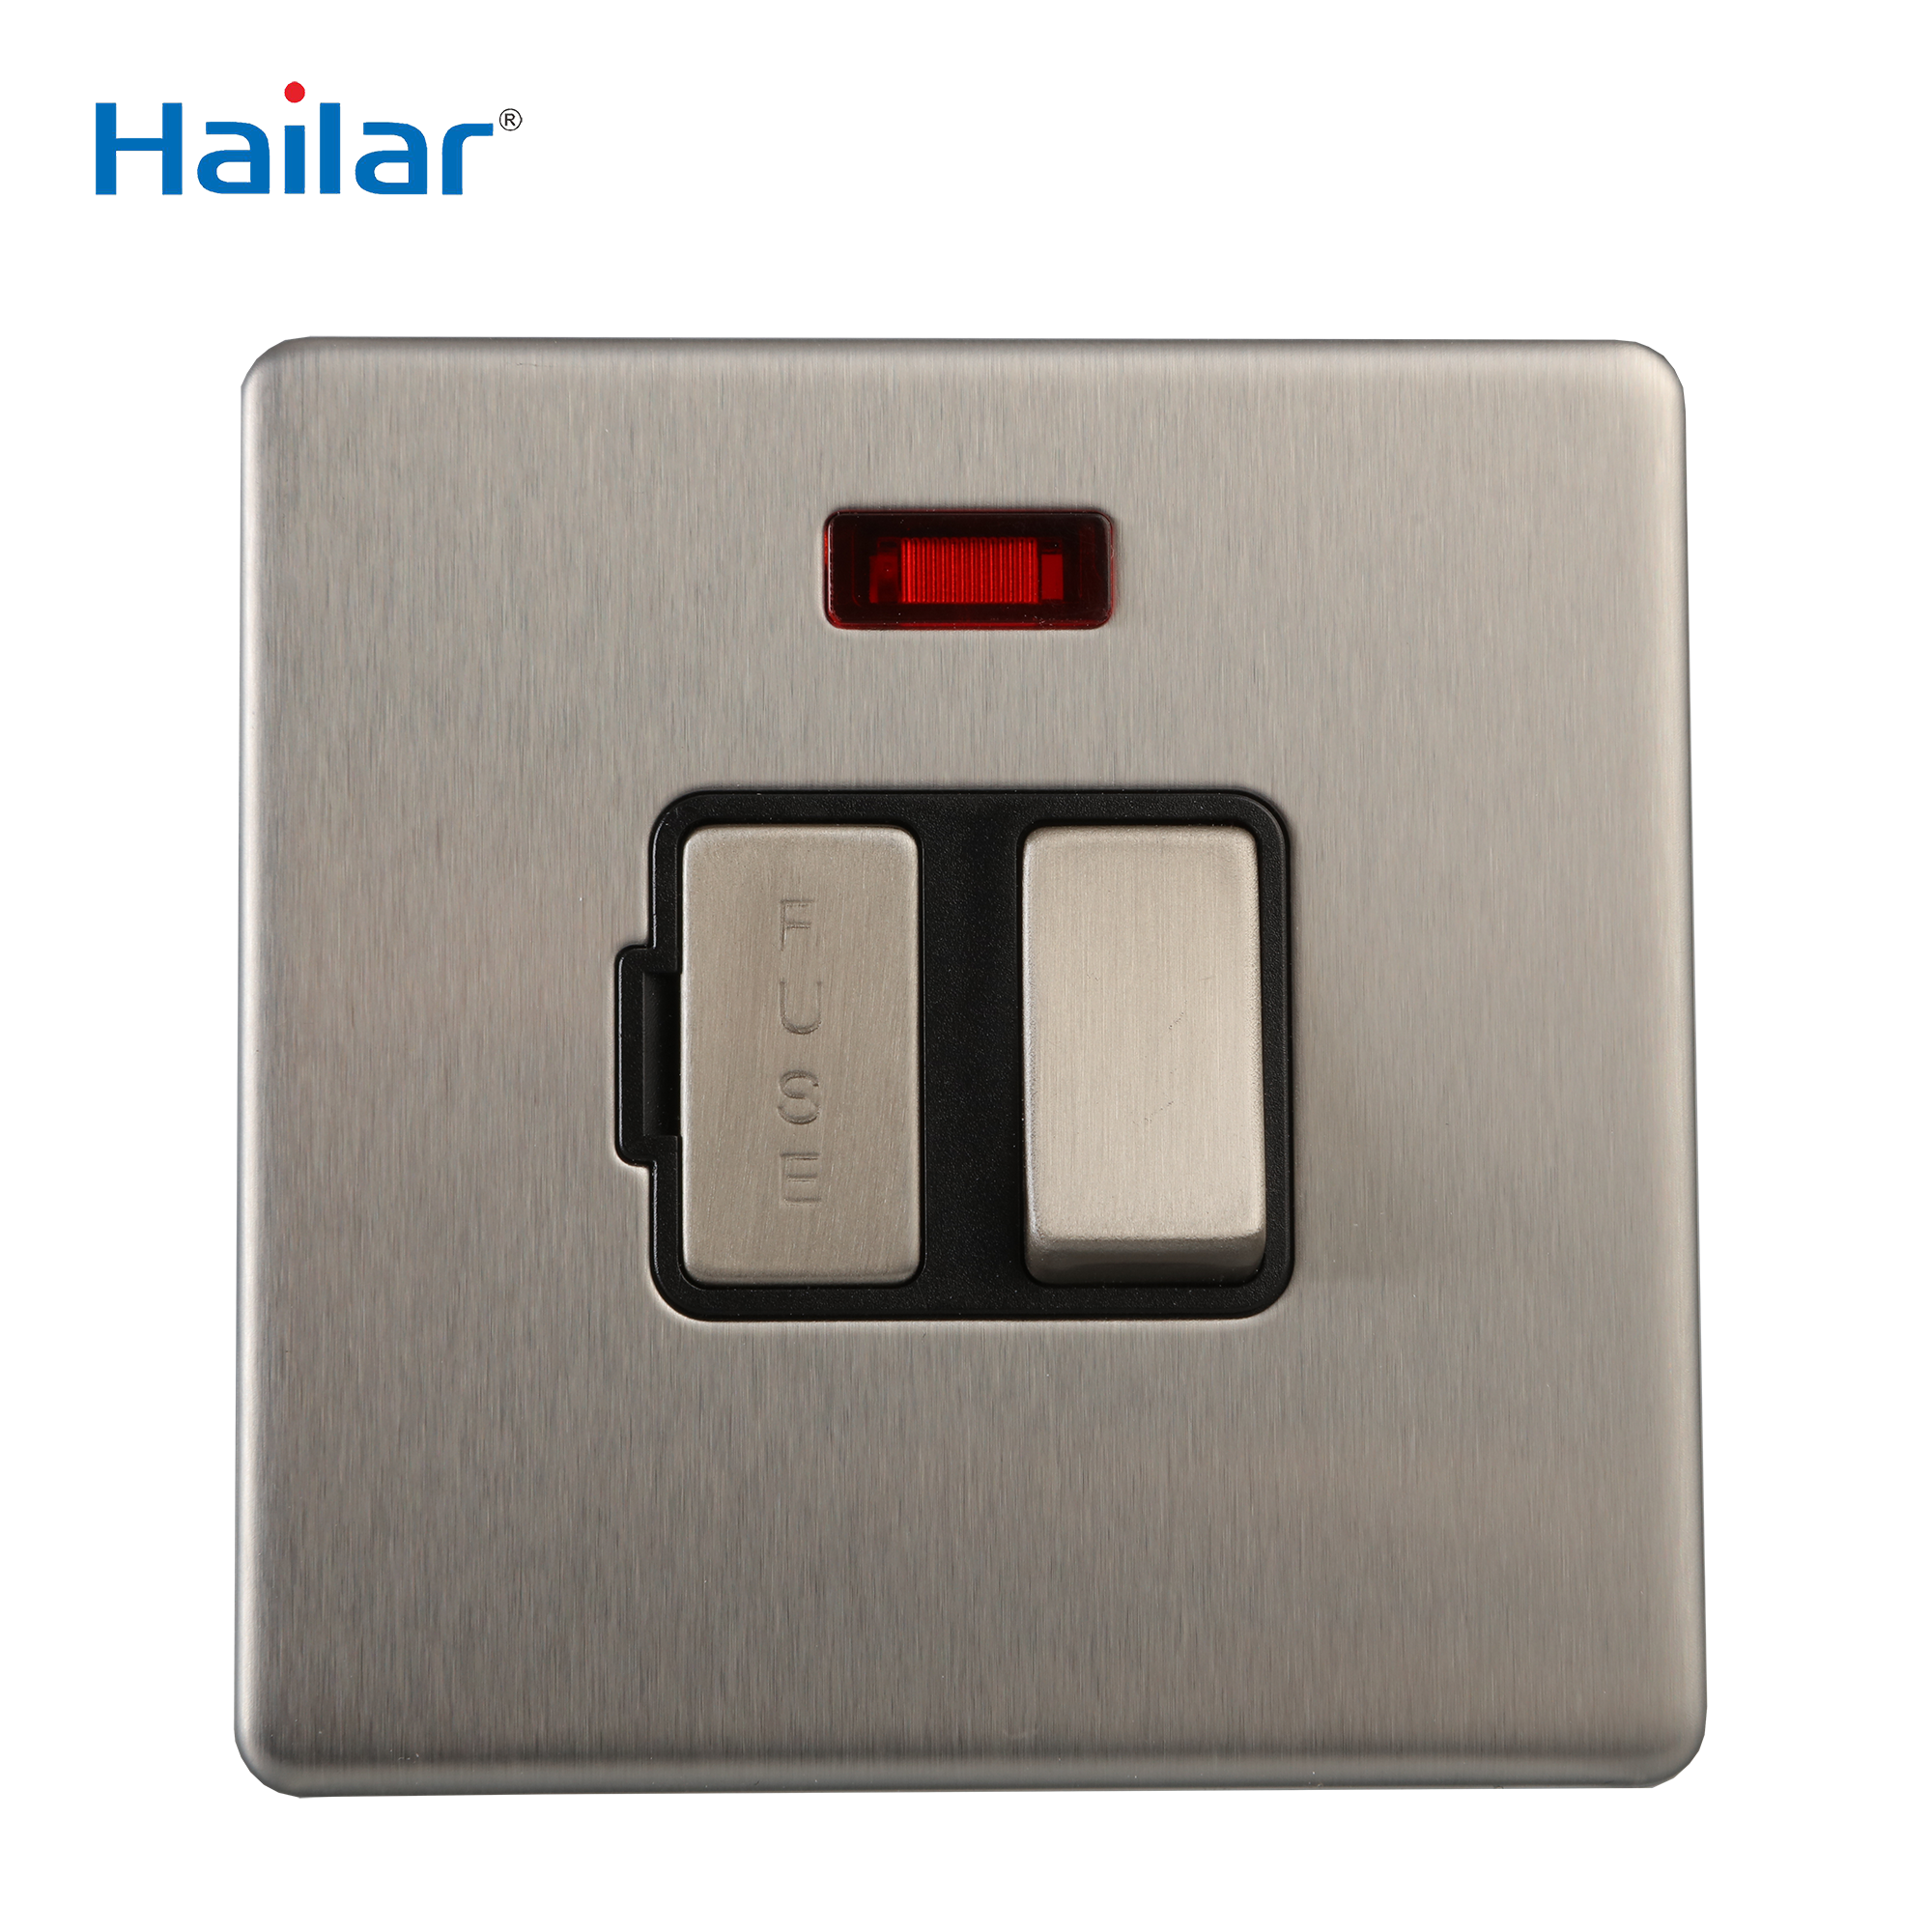 Hailar brushed chrome screwless plate 13A switched FUSE with flex outlet neon light indicator